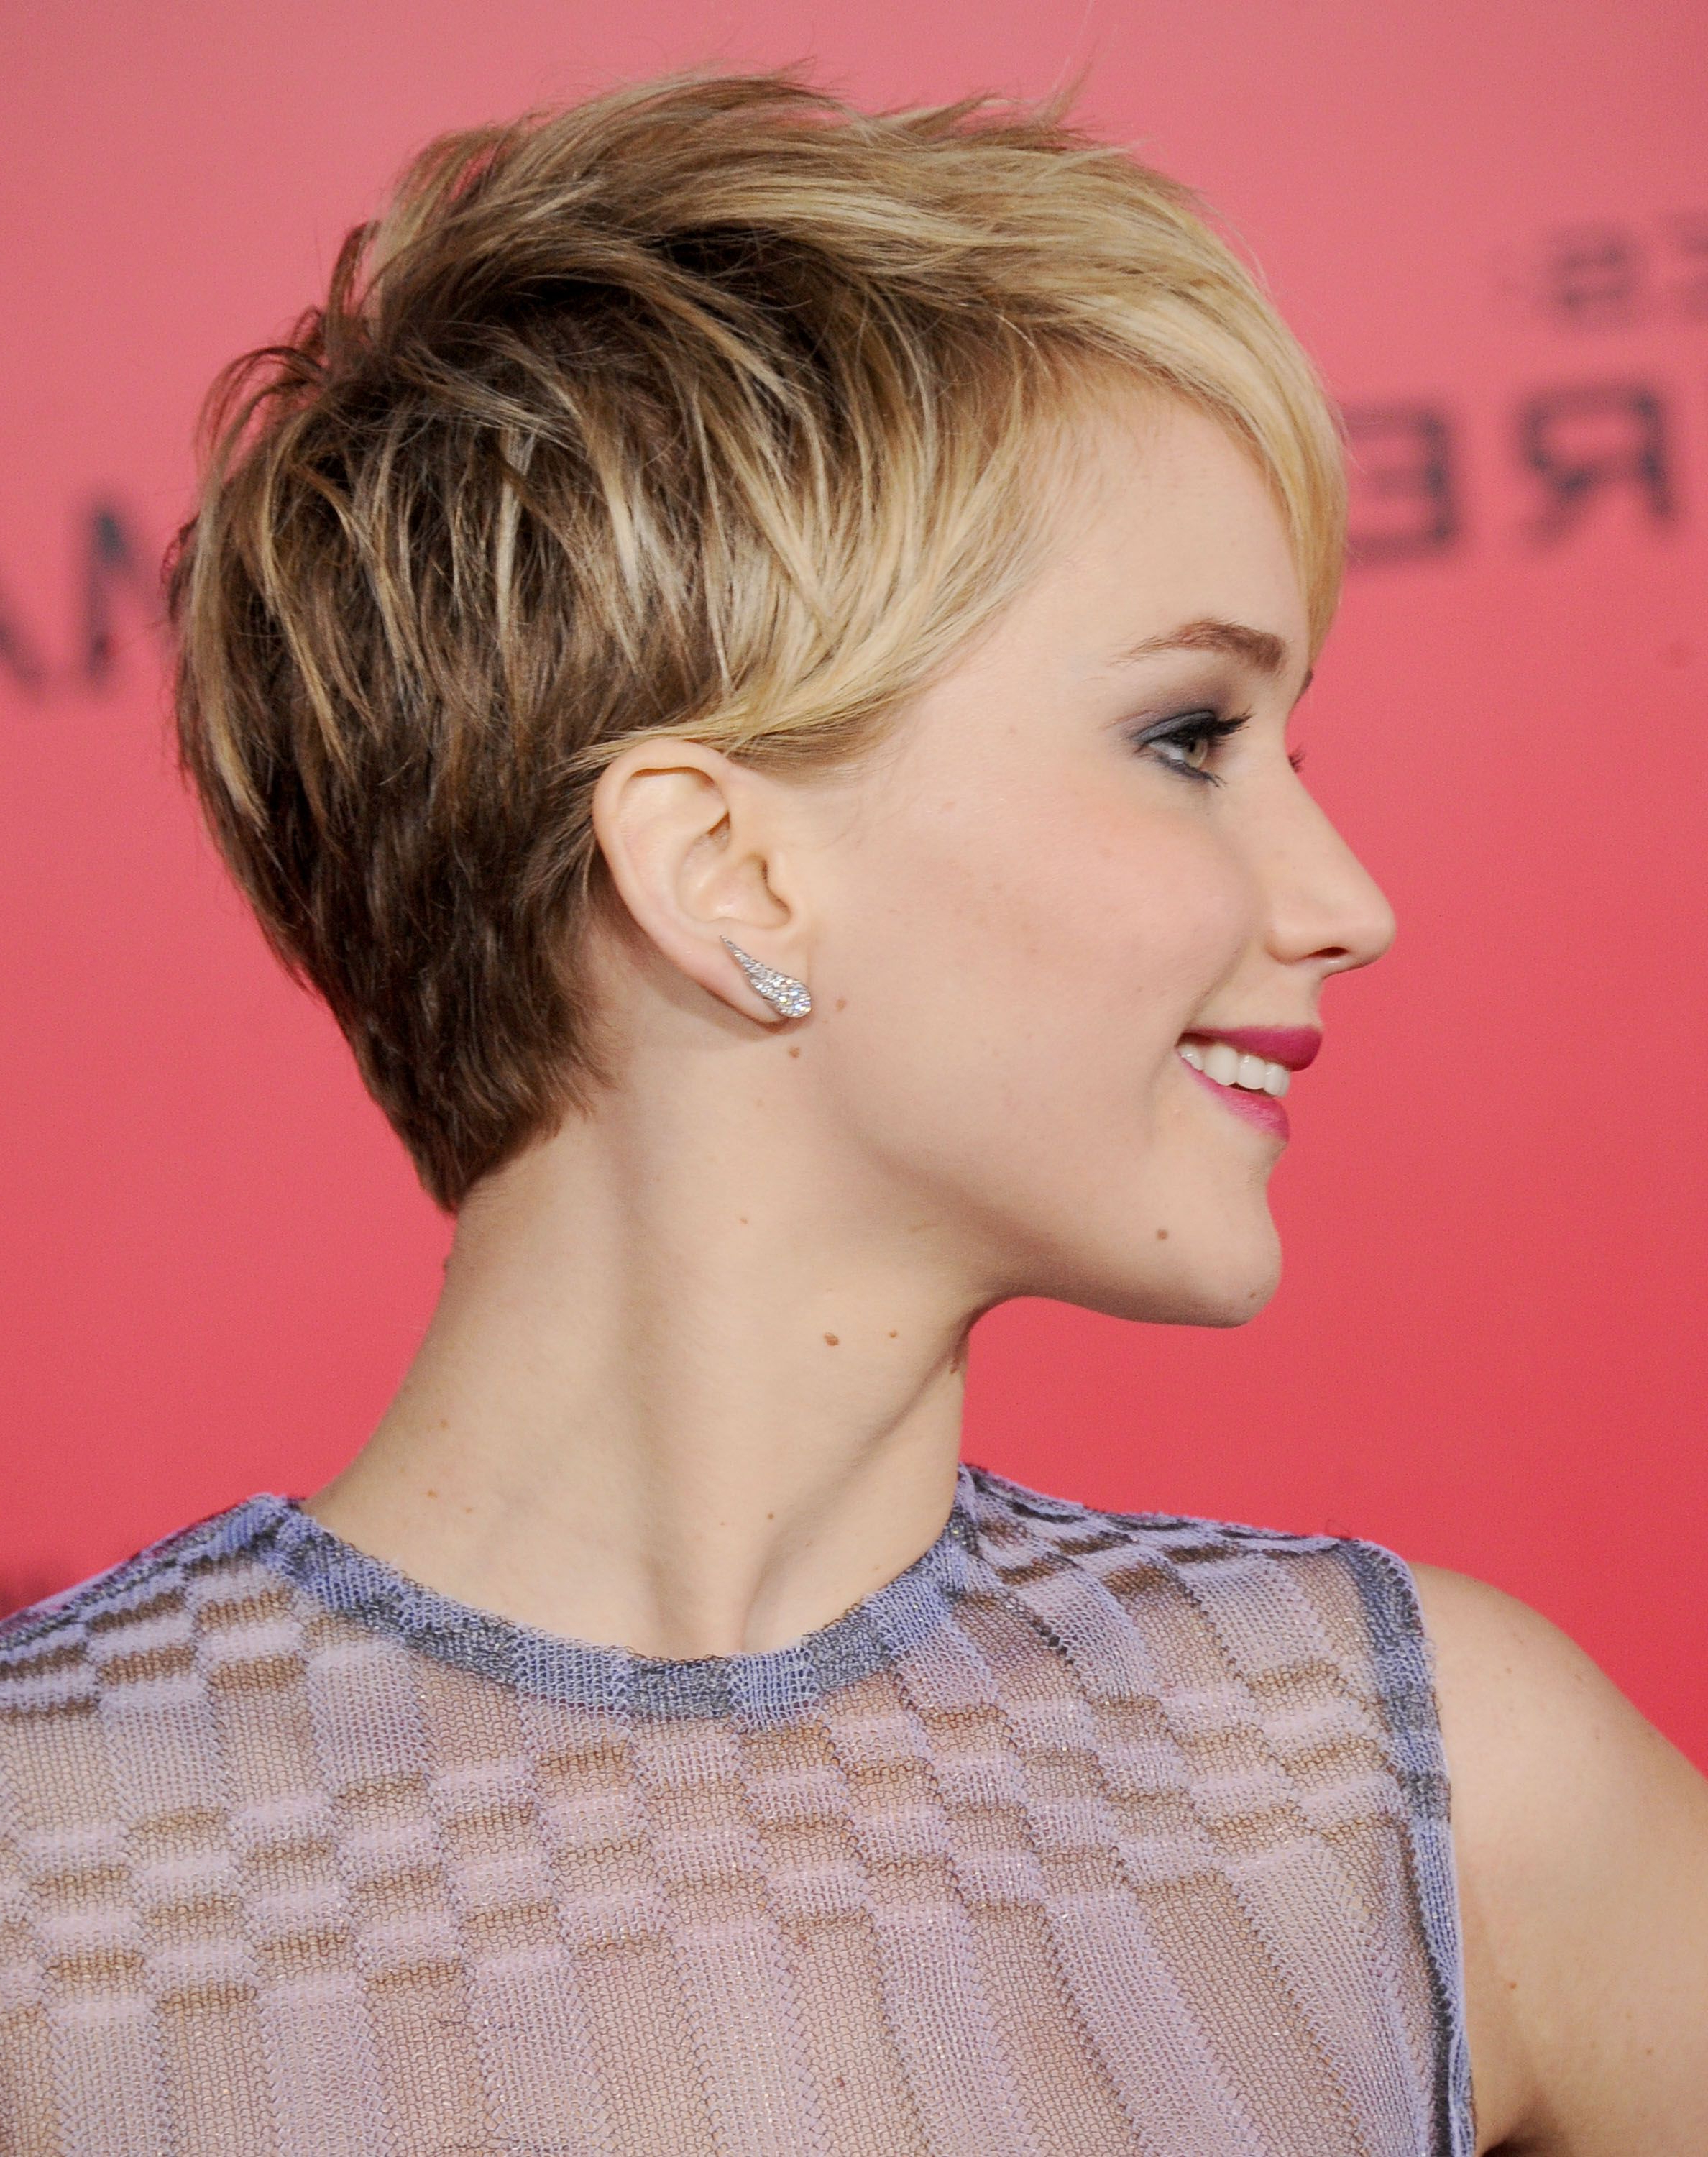 Jennifer Lawrence's Pixie | Hair | Pinterest | Hair, Short Hair regarding Jennifer Lawrence Short Hairstyles